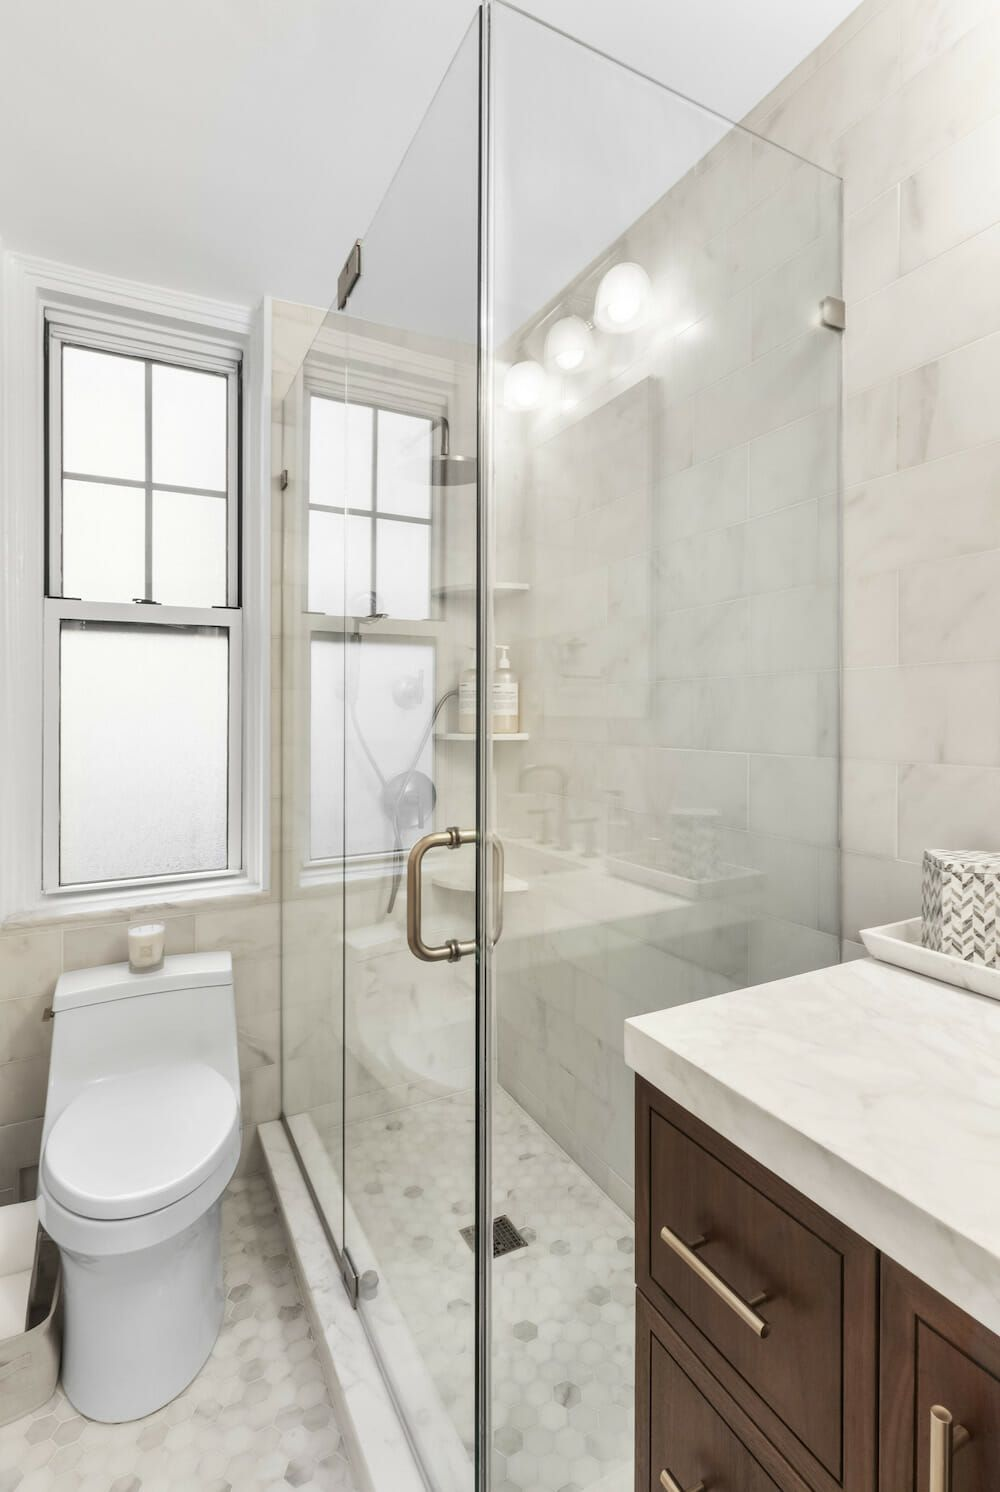 A Leak Leads To A Luxe Remodel In The West Village In 2020 Bathroom Renovation Trends Bathroom Model Bathroom Colors